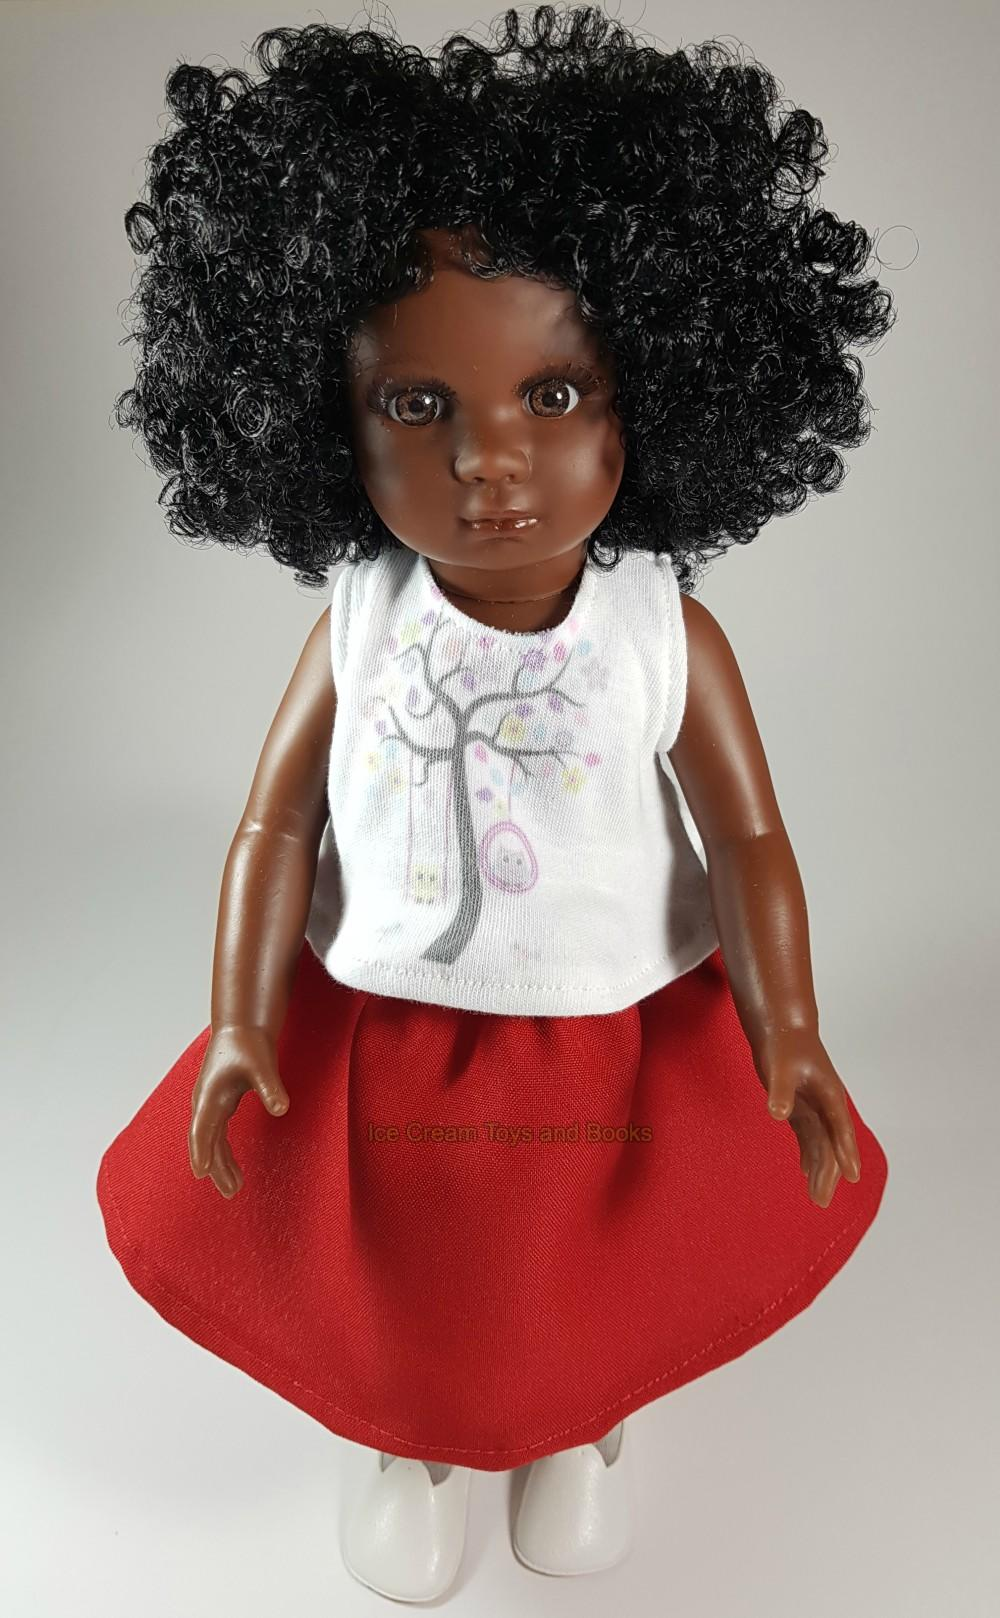 black doll with black hair